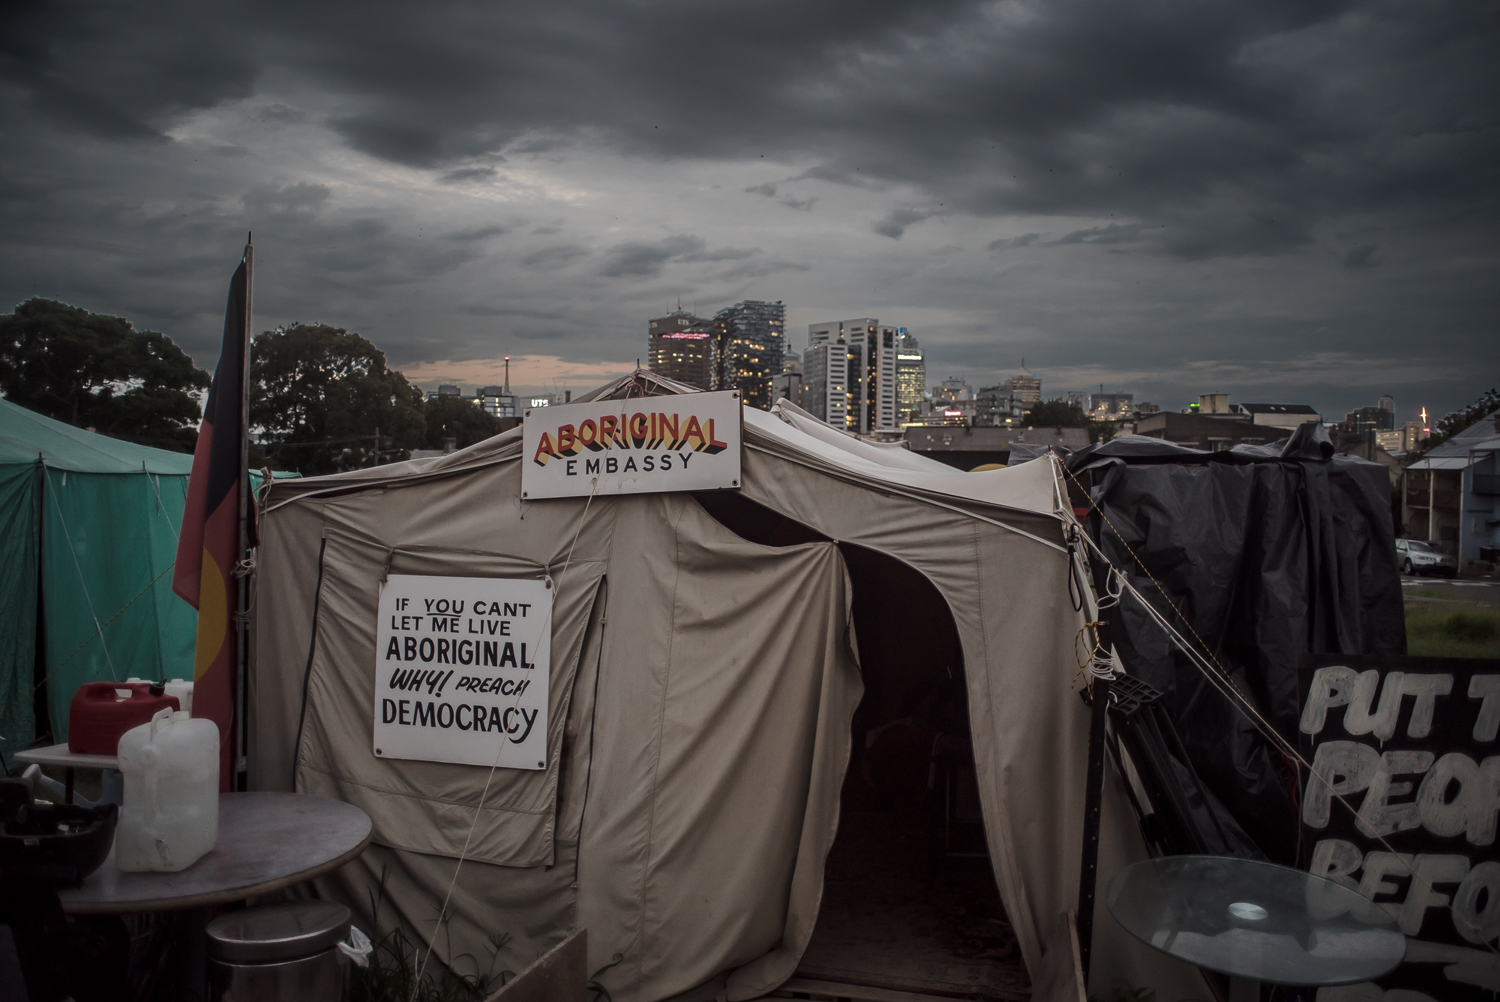 Redfern Aboriginal Tent Embassy